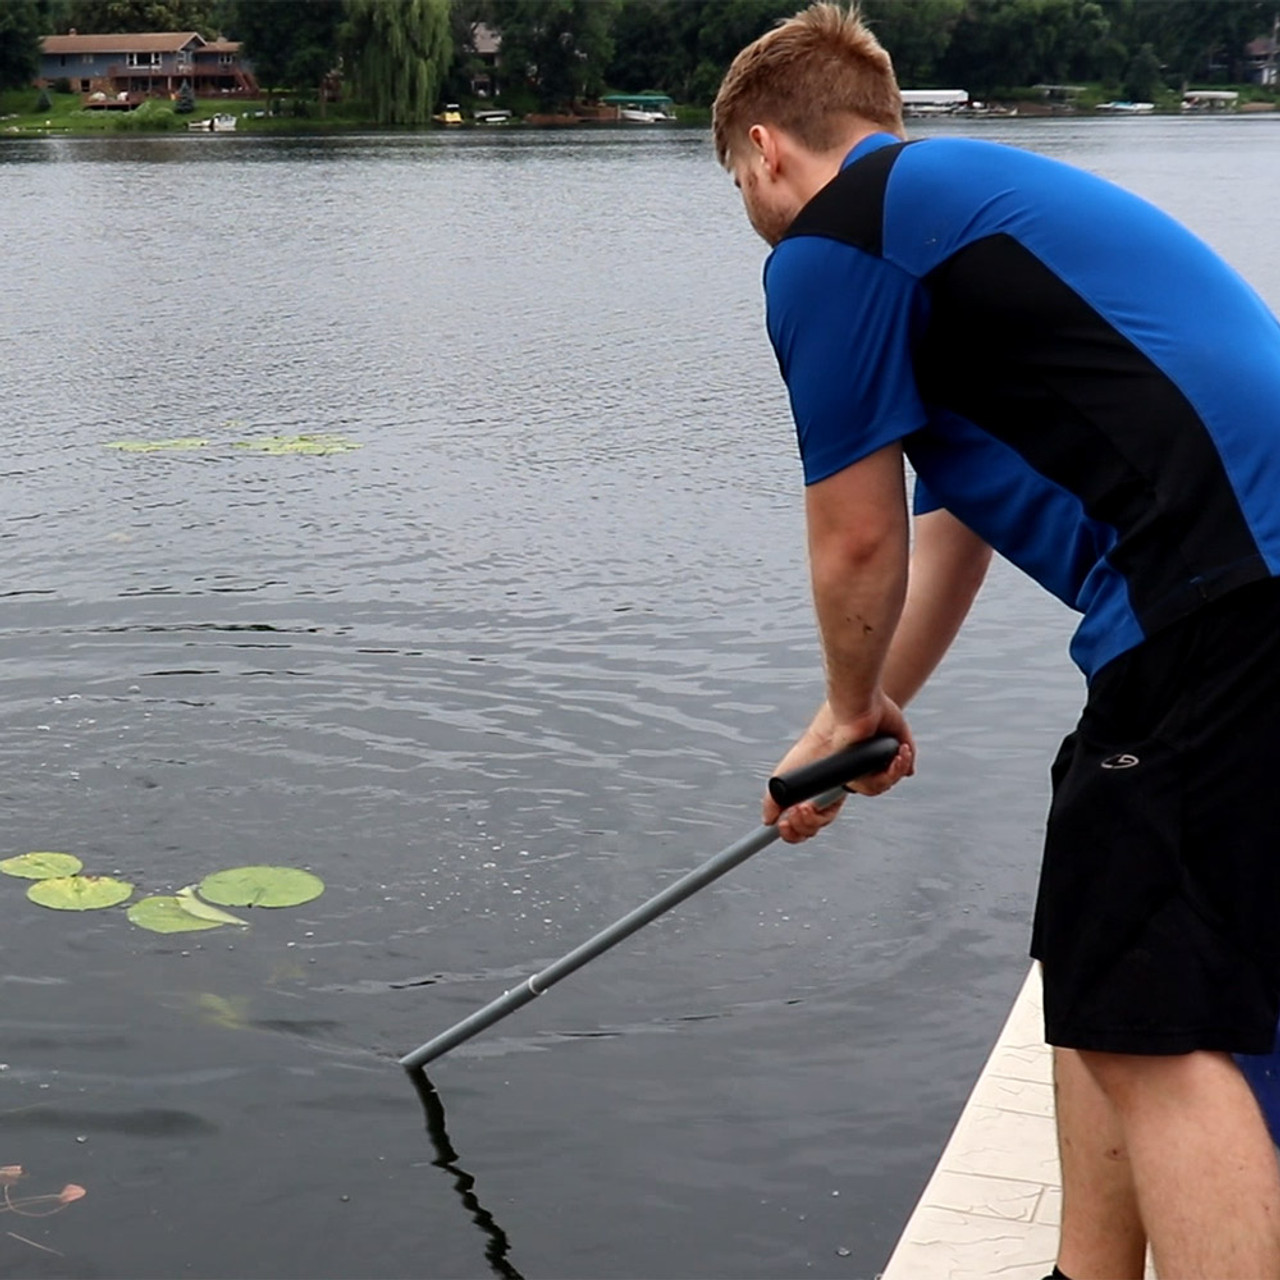 muck silt removal Beach Weed Cutter Ripper Lake Aquatic Weed Pulling Tool Rope